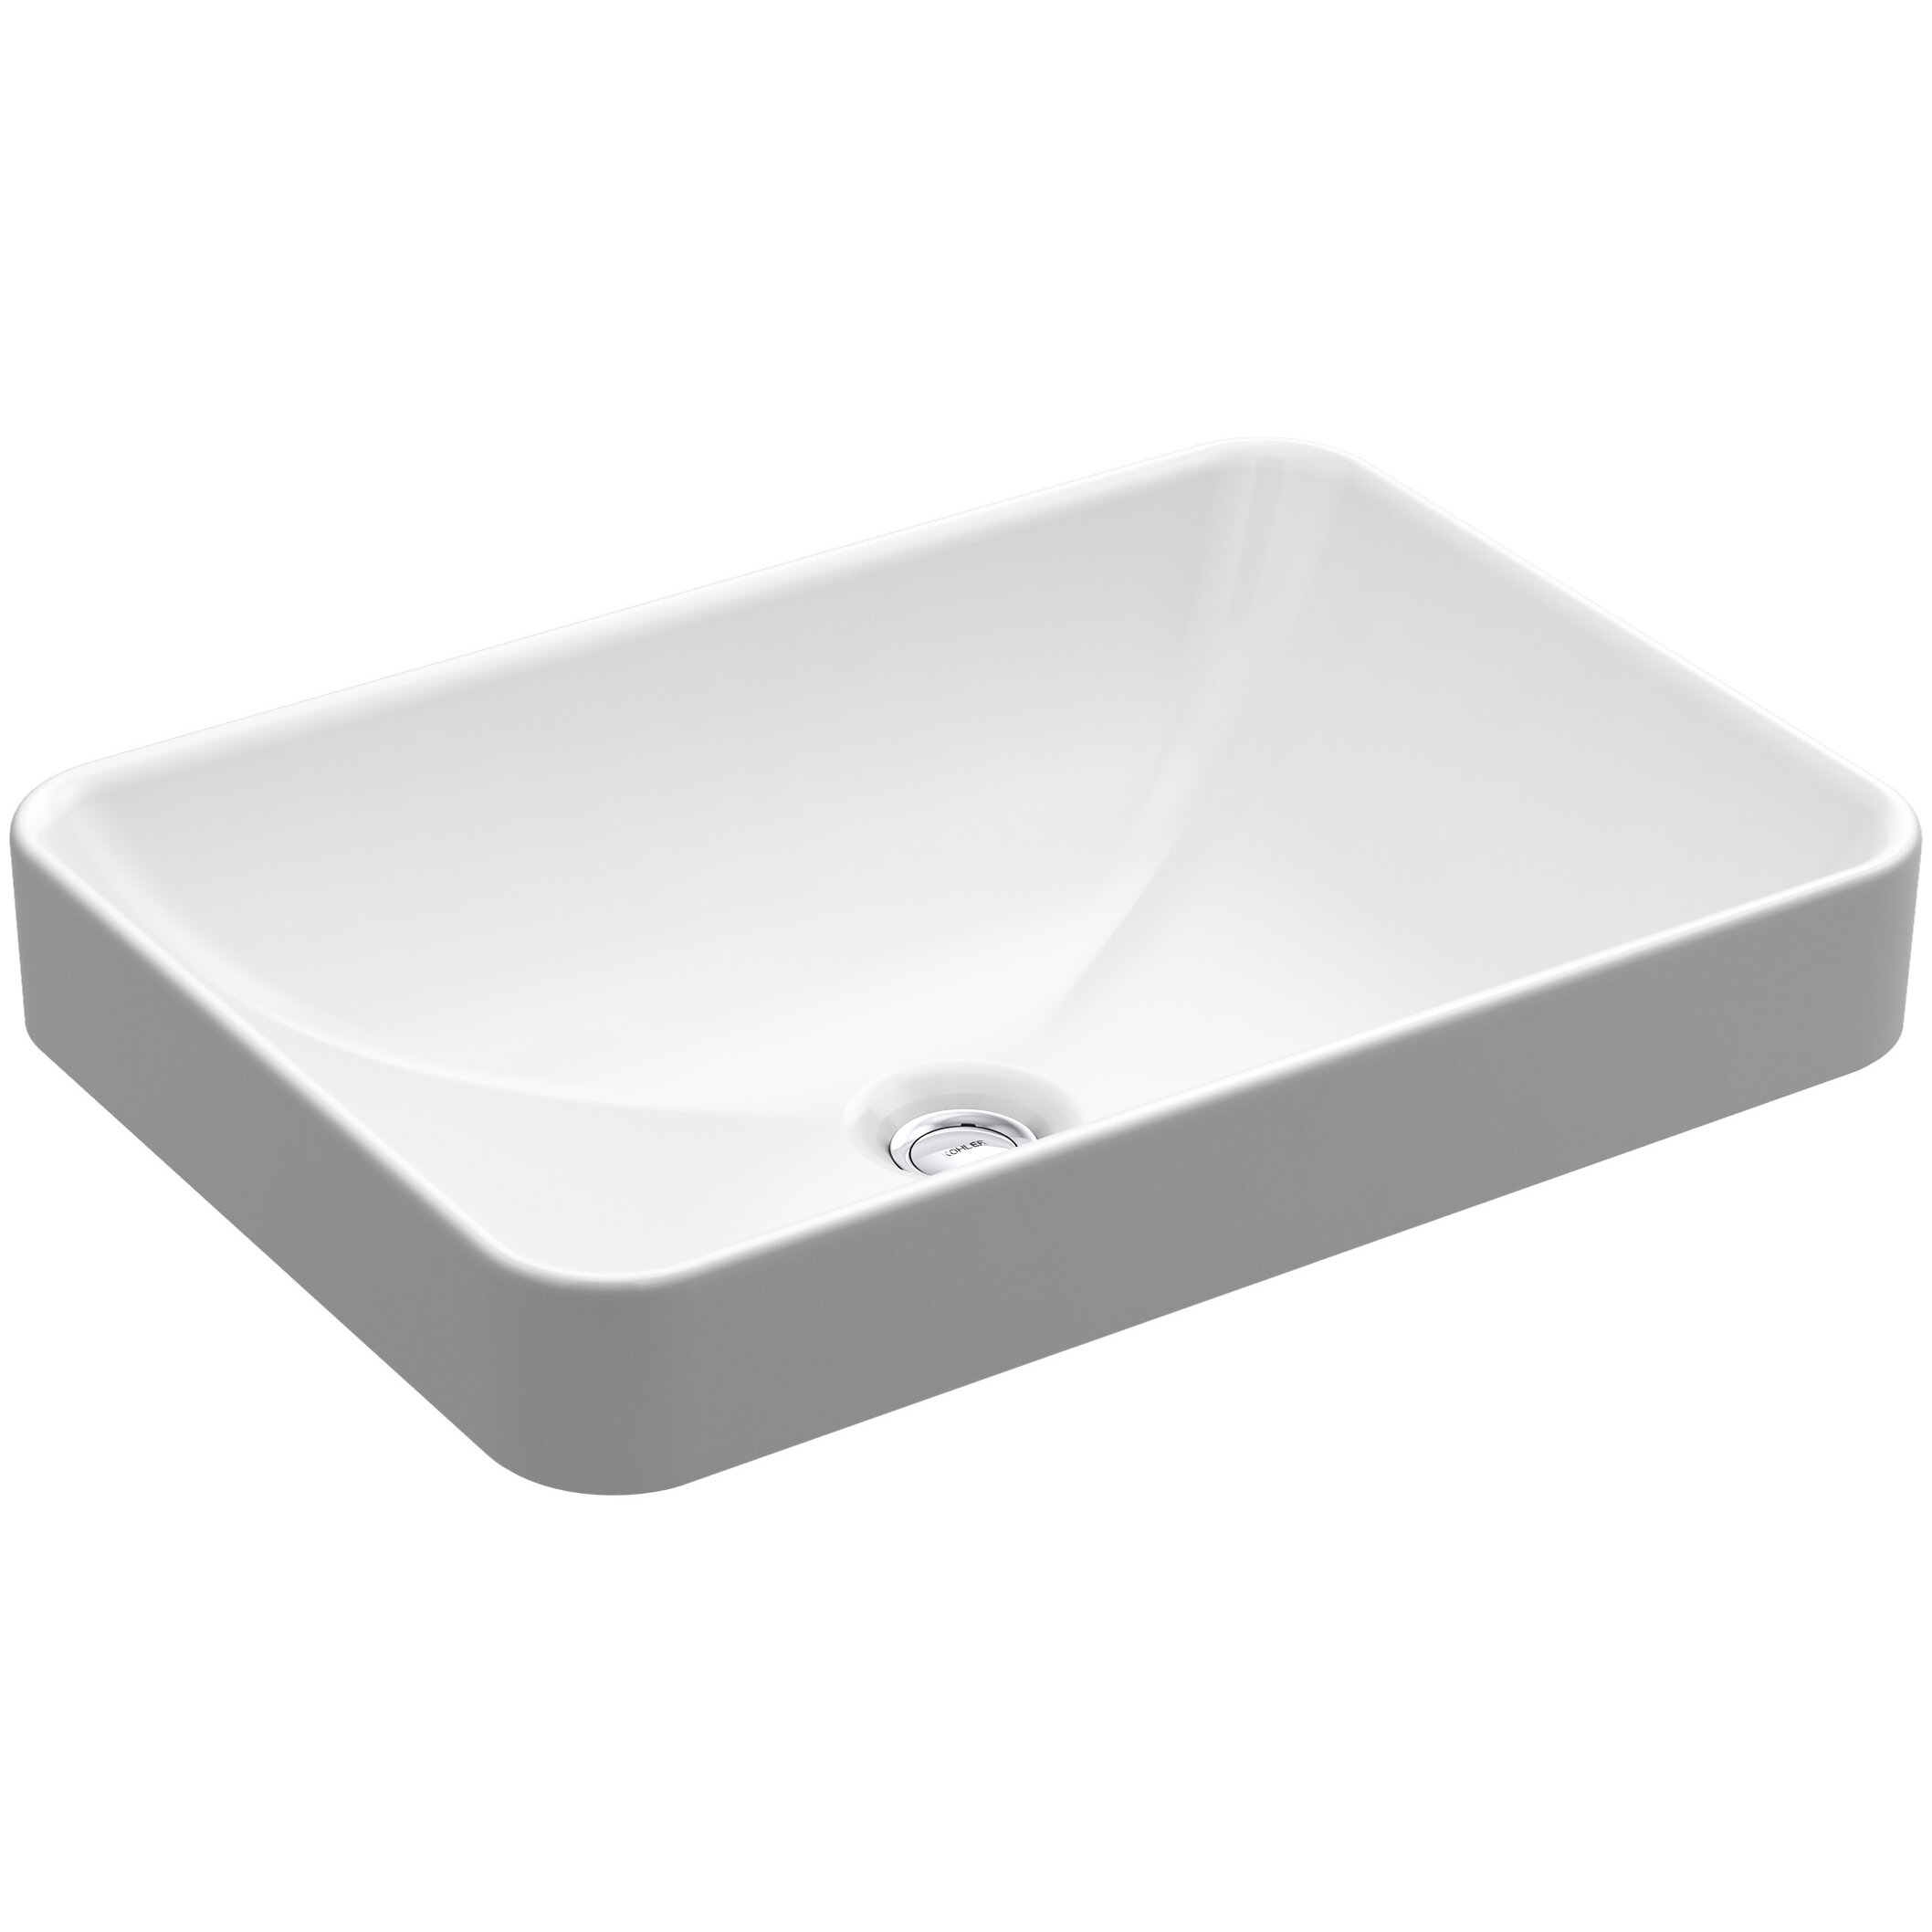 Kohler Vox Rectangle Vessel Above-Counter Bathroom Sink in White ...